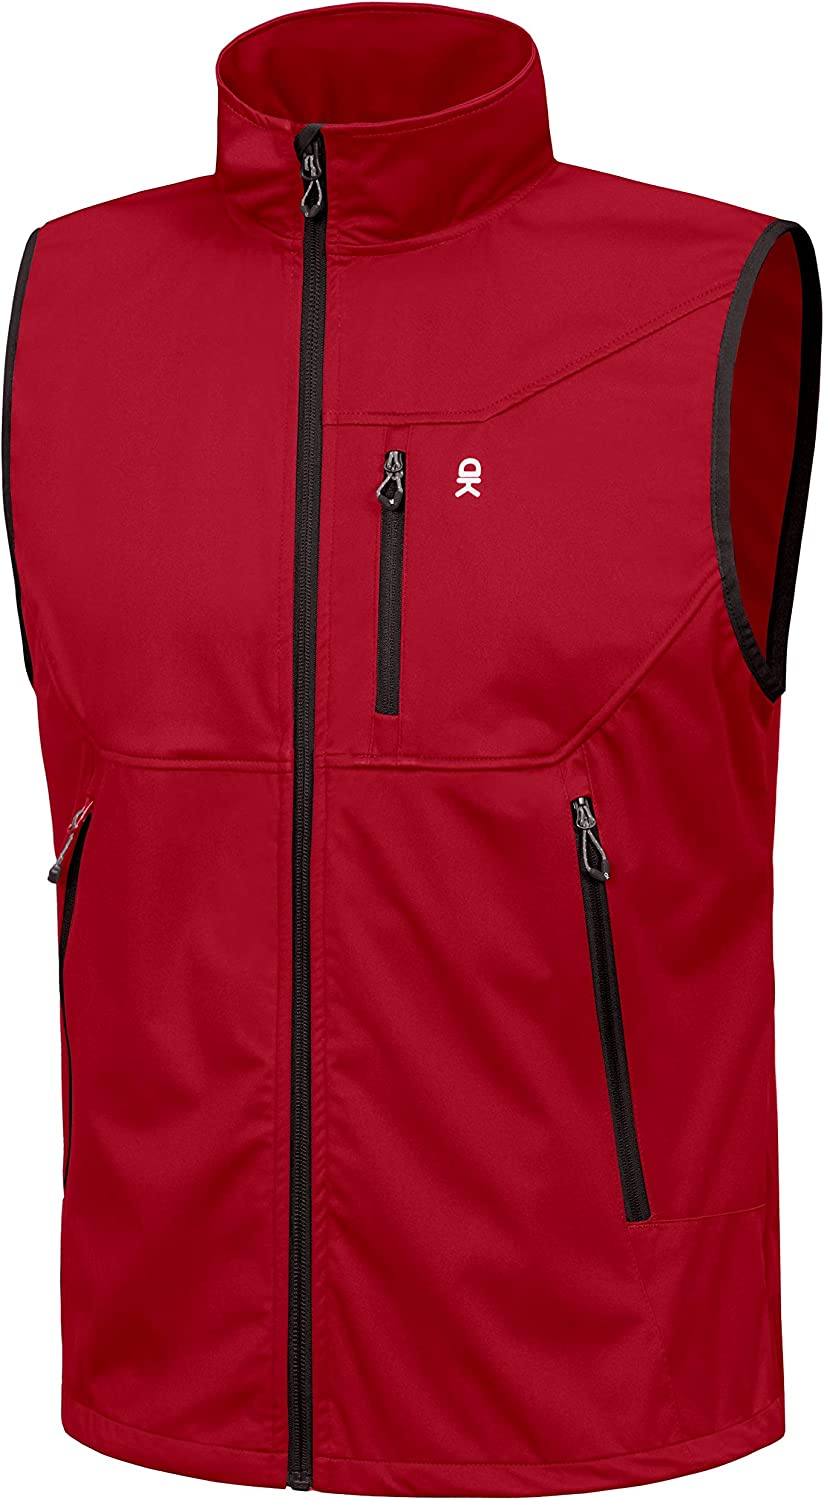 Beauty products Little Donkey Andy Men's Lightweight Windproof S Virginia Beach Mall Vest Softshell